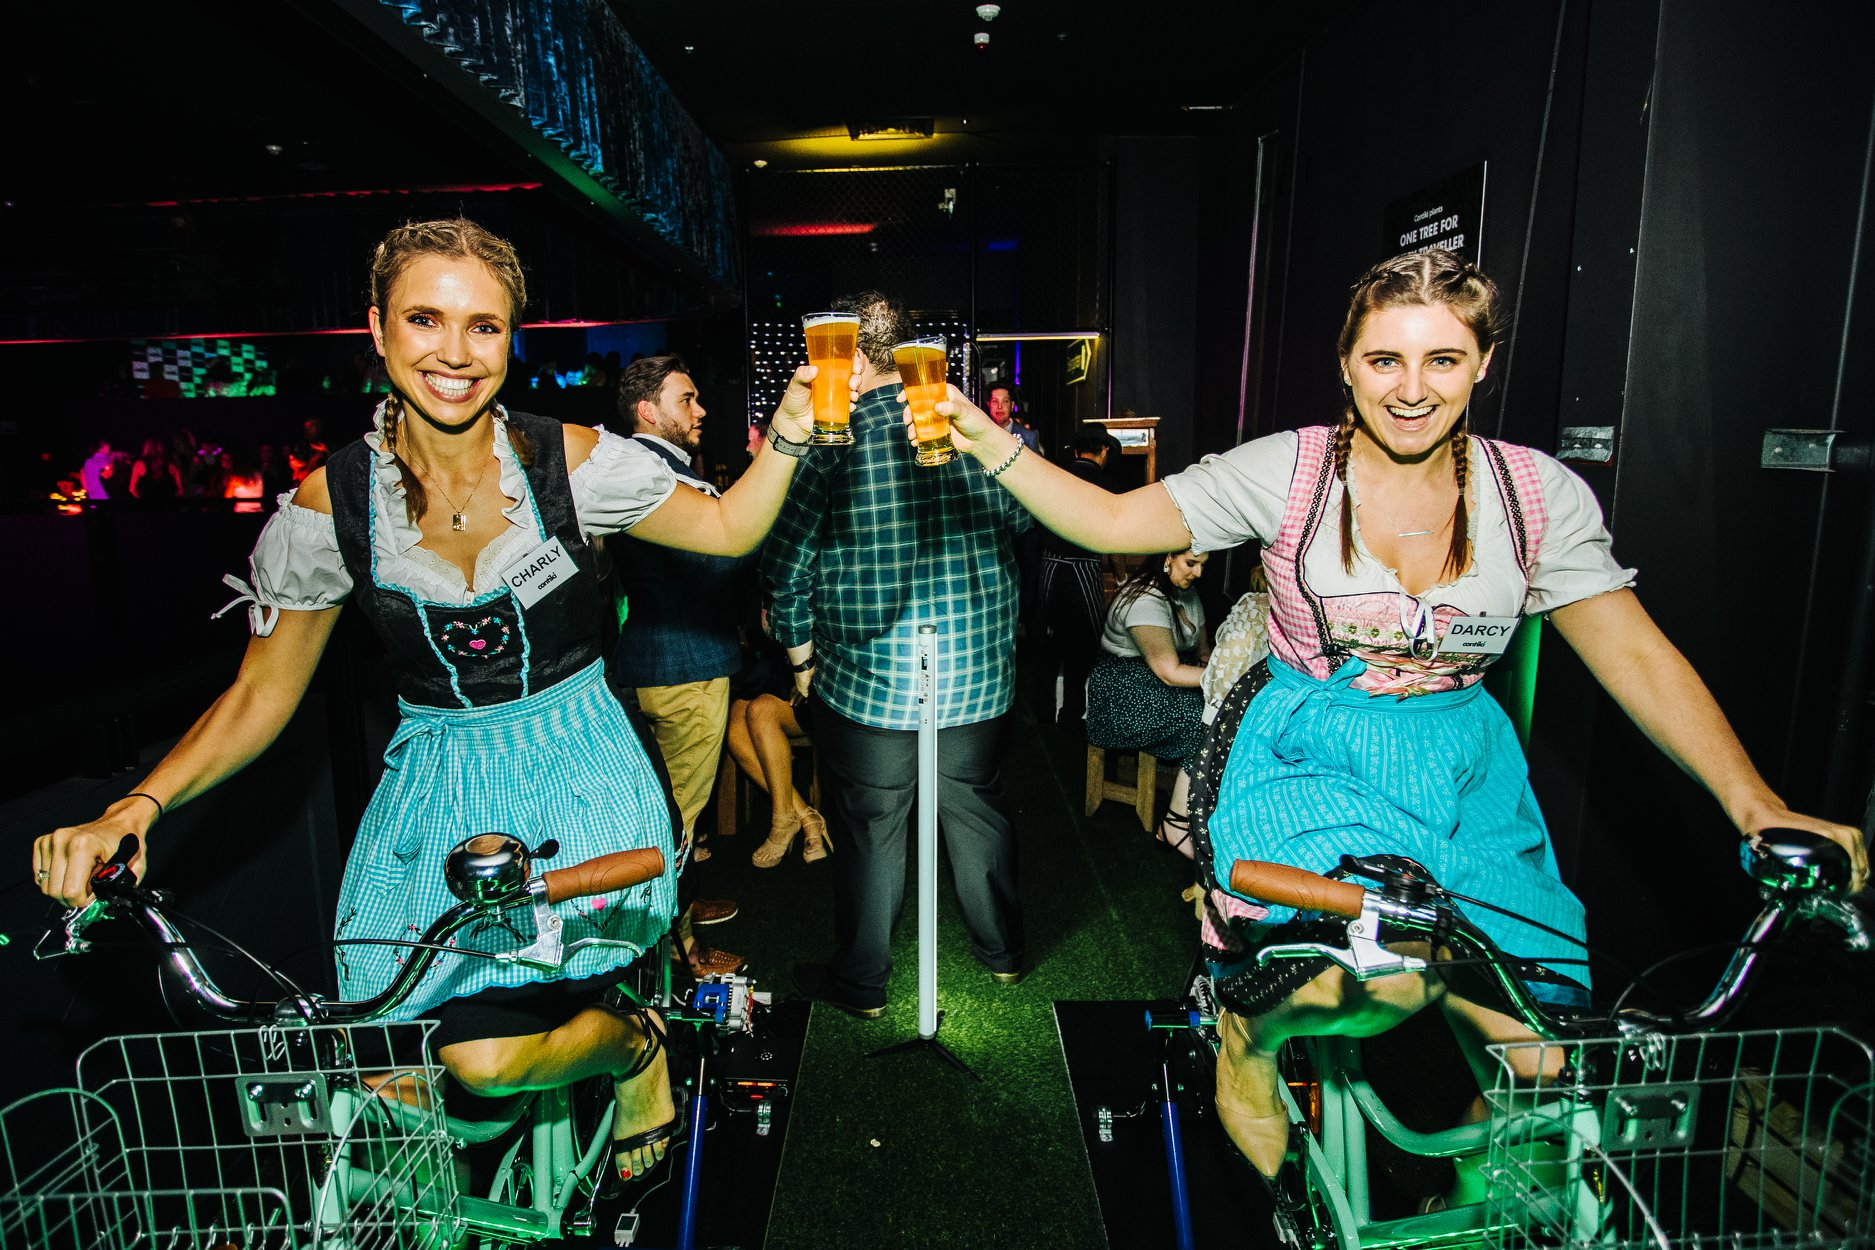 Contiki launches new revamped Europe 2020 experiences at Contiki Legends event via Banter